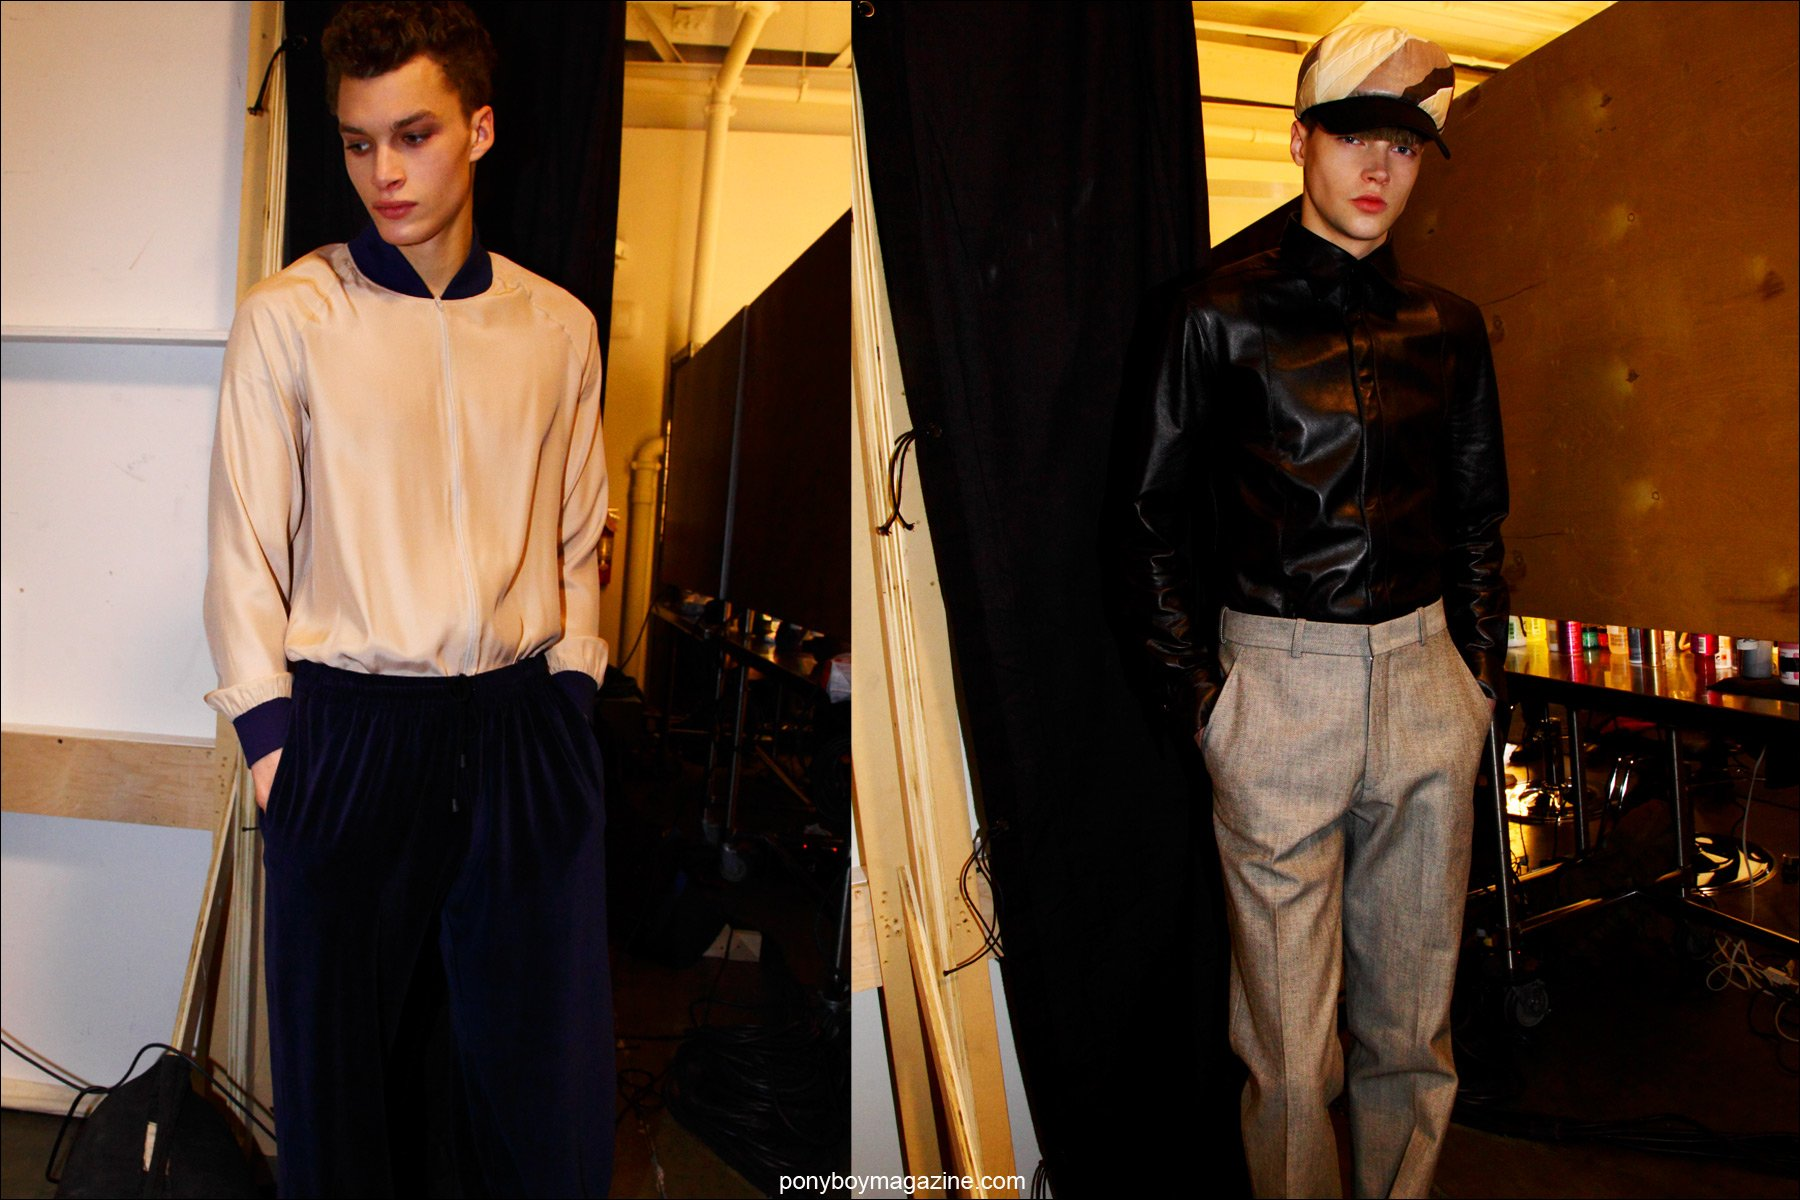 Menswear by New York designer Martin Keehn, F/W15 collection, photographed backstage at Pier 59 Studios NY by Alexander Thompson for Ponyboy magazine.